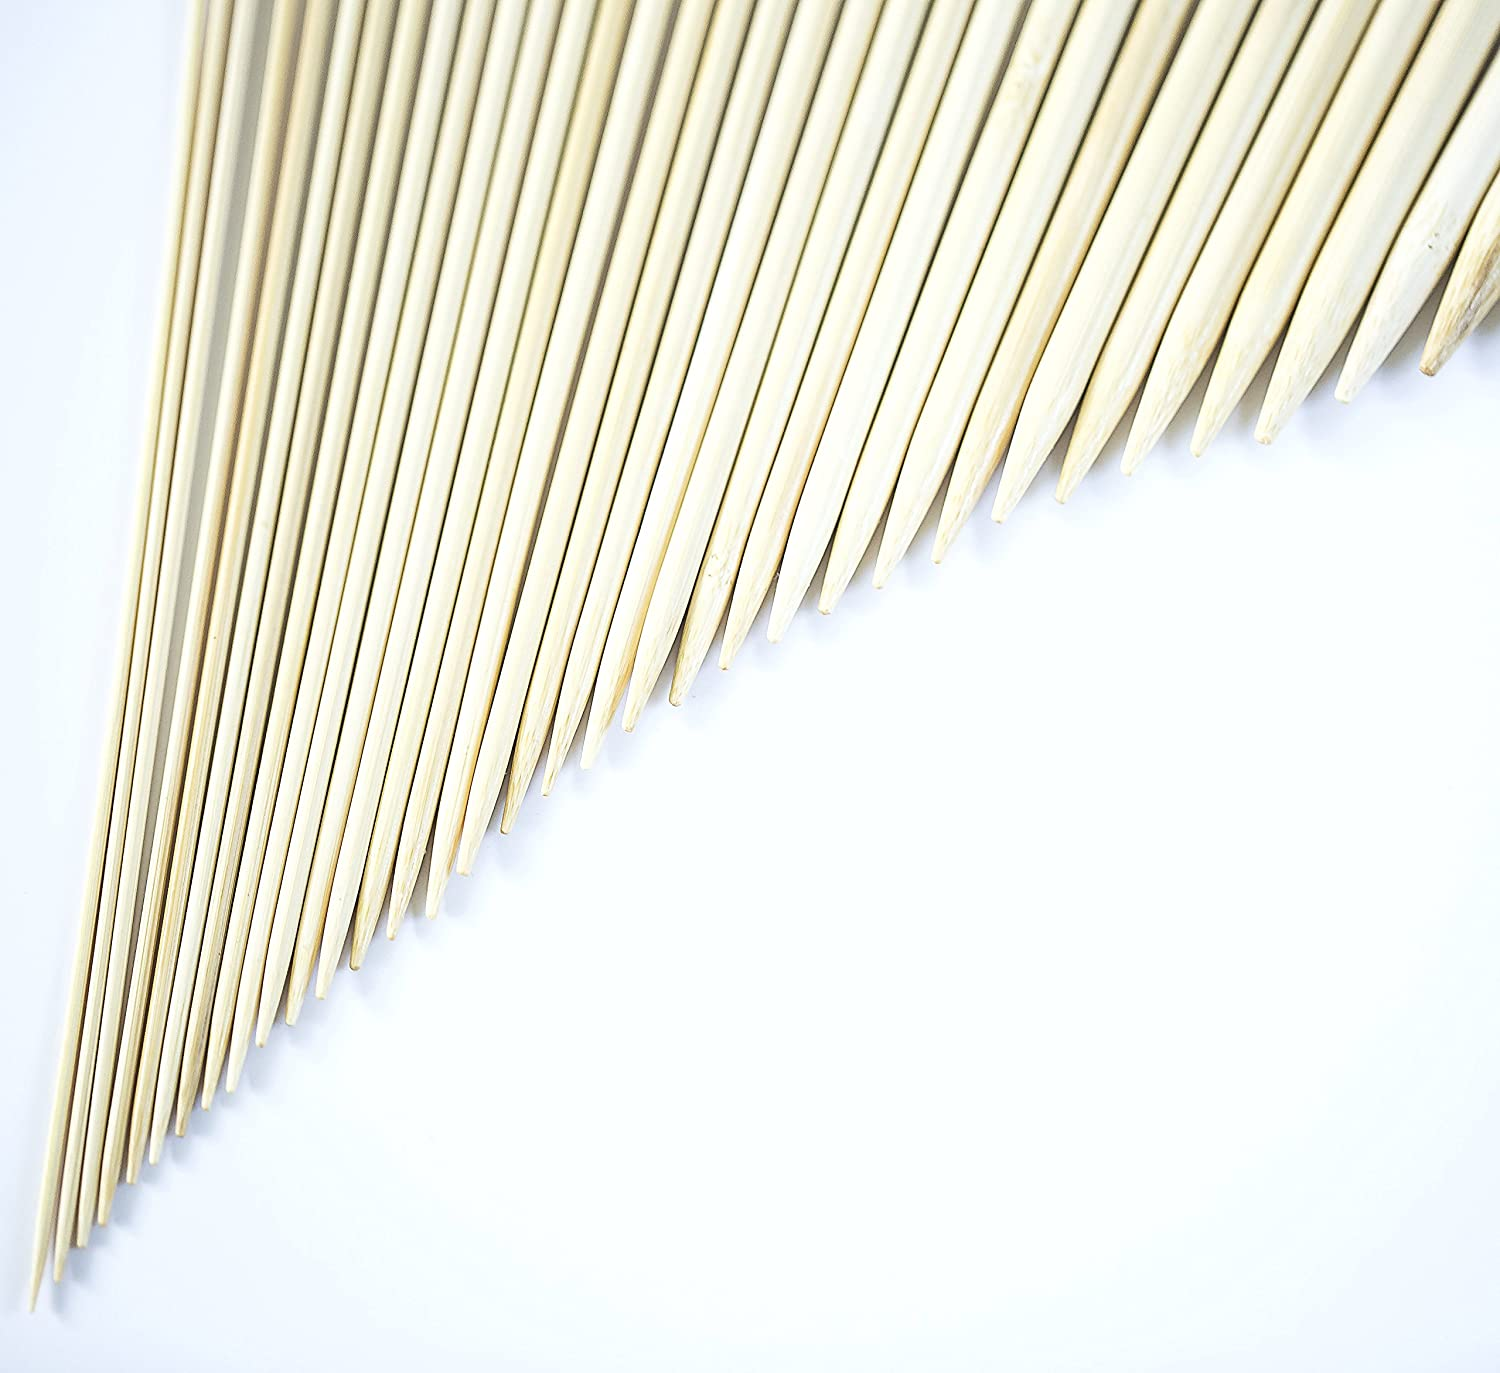 36 Pcs Smooth Bamboo Knitting Needles Set by Celley 18 Sizes US 0 to US 15